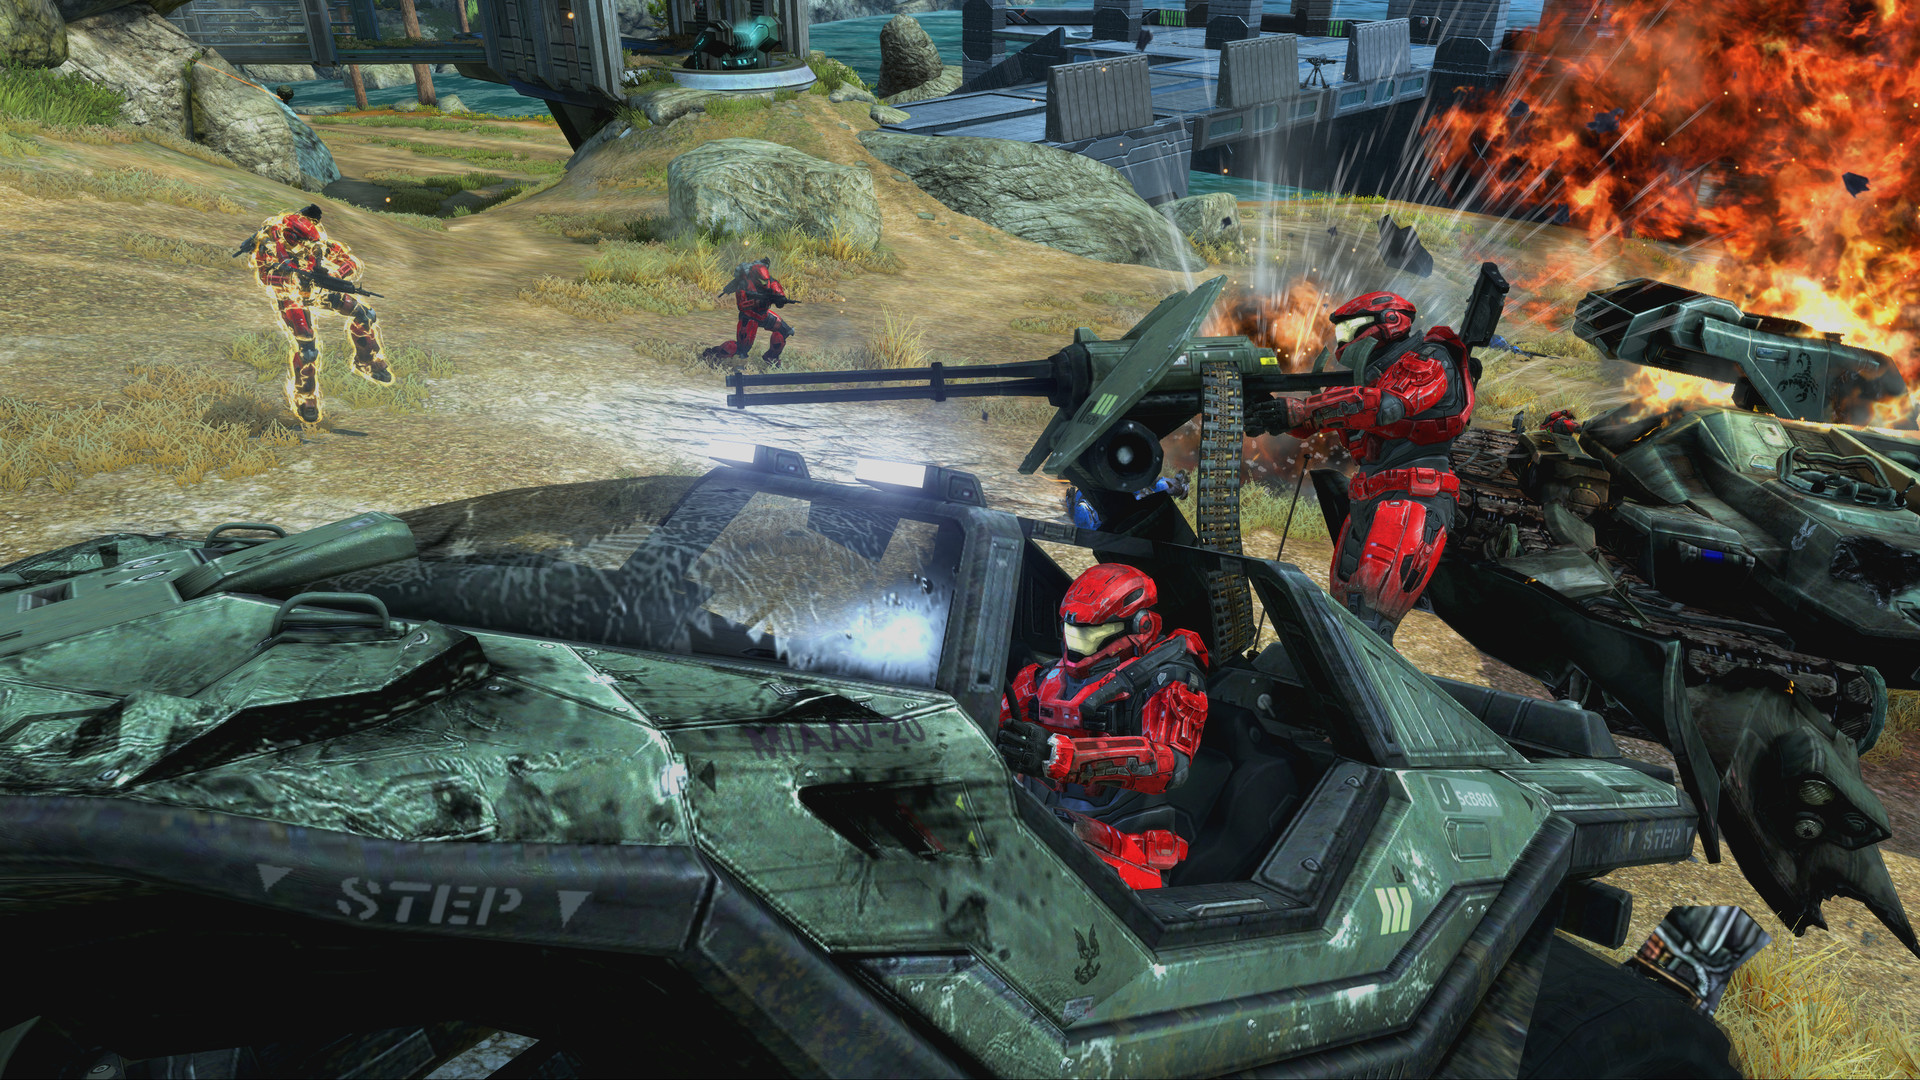 Two red Spartan players antagonize another character from their Warthog in Halo multiplayer.